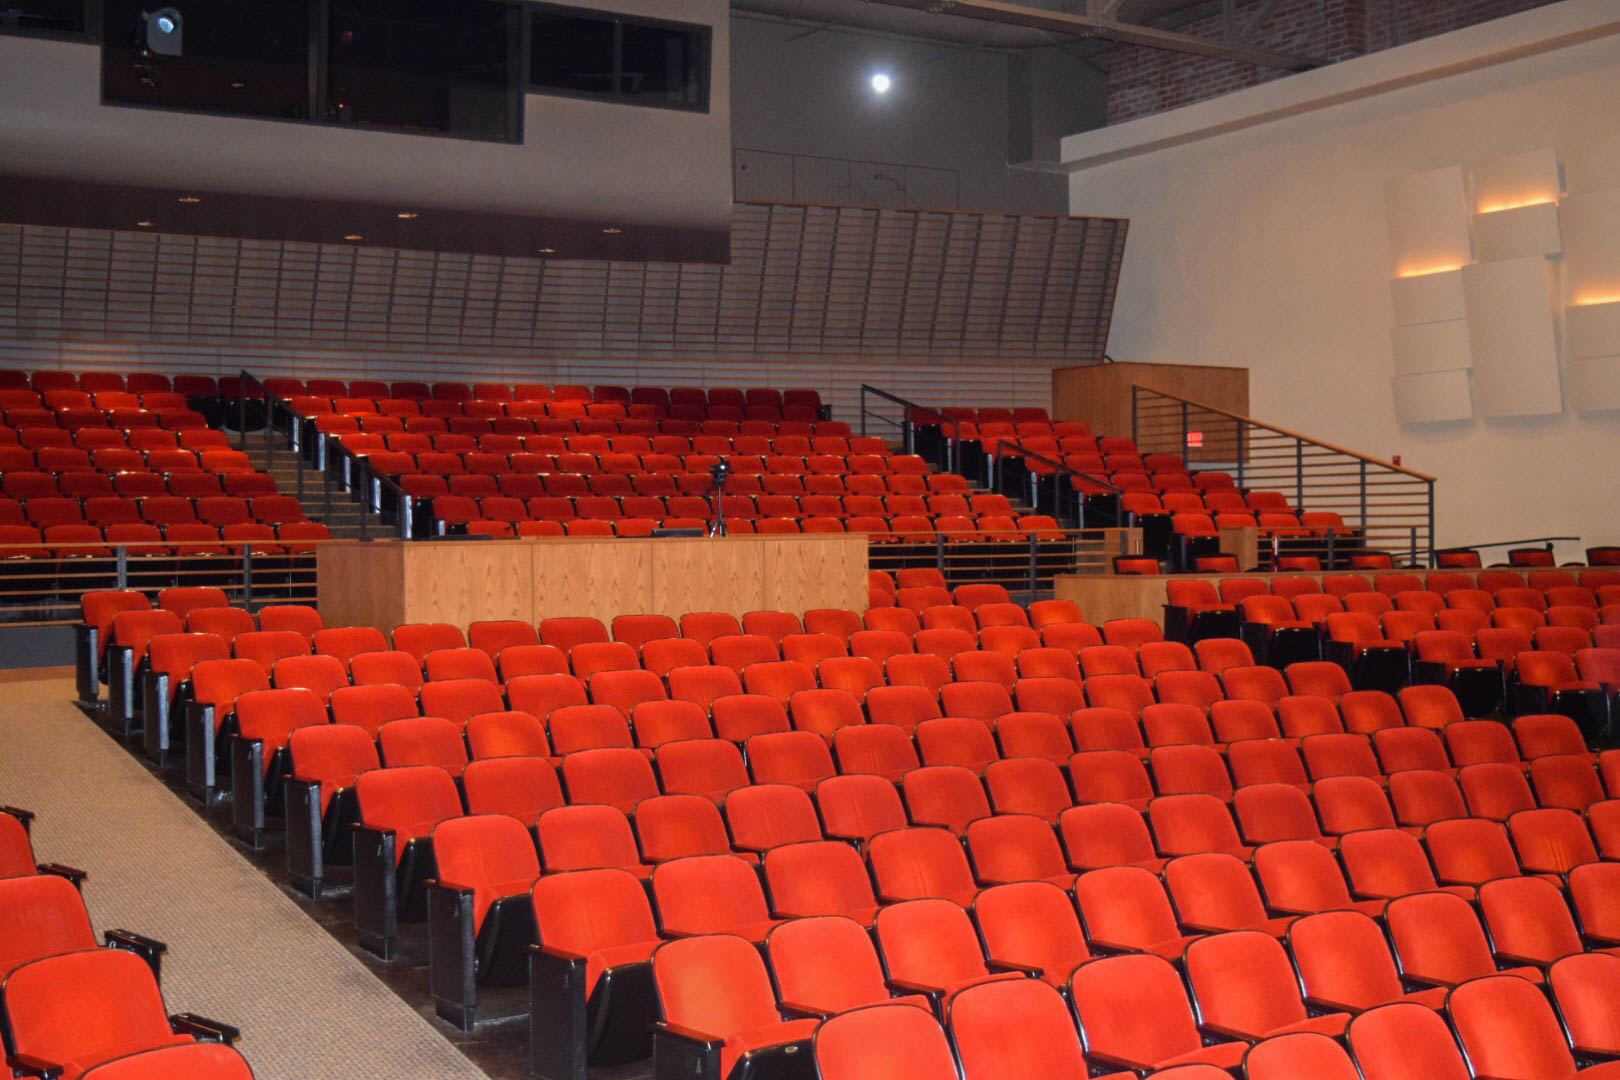 The ensemble performances are held in  Garrison Theater . It has a 630 seat capacity.